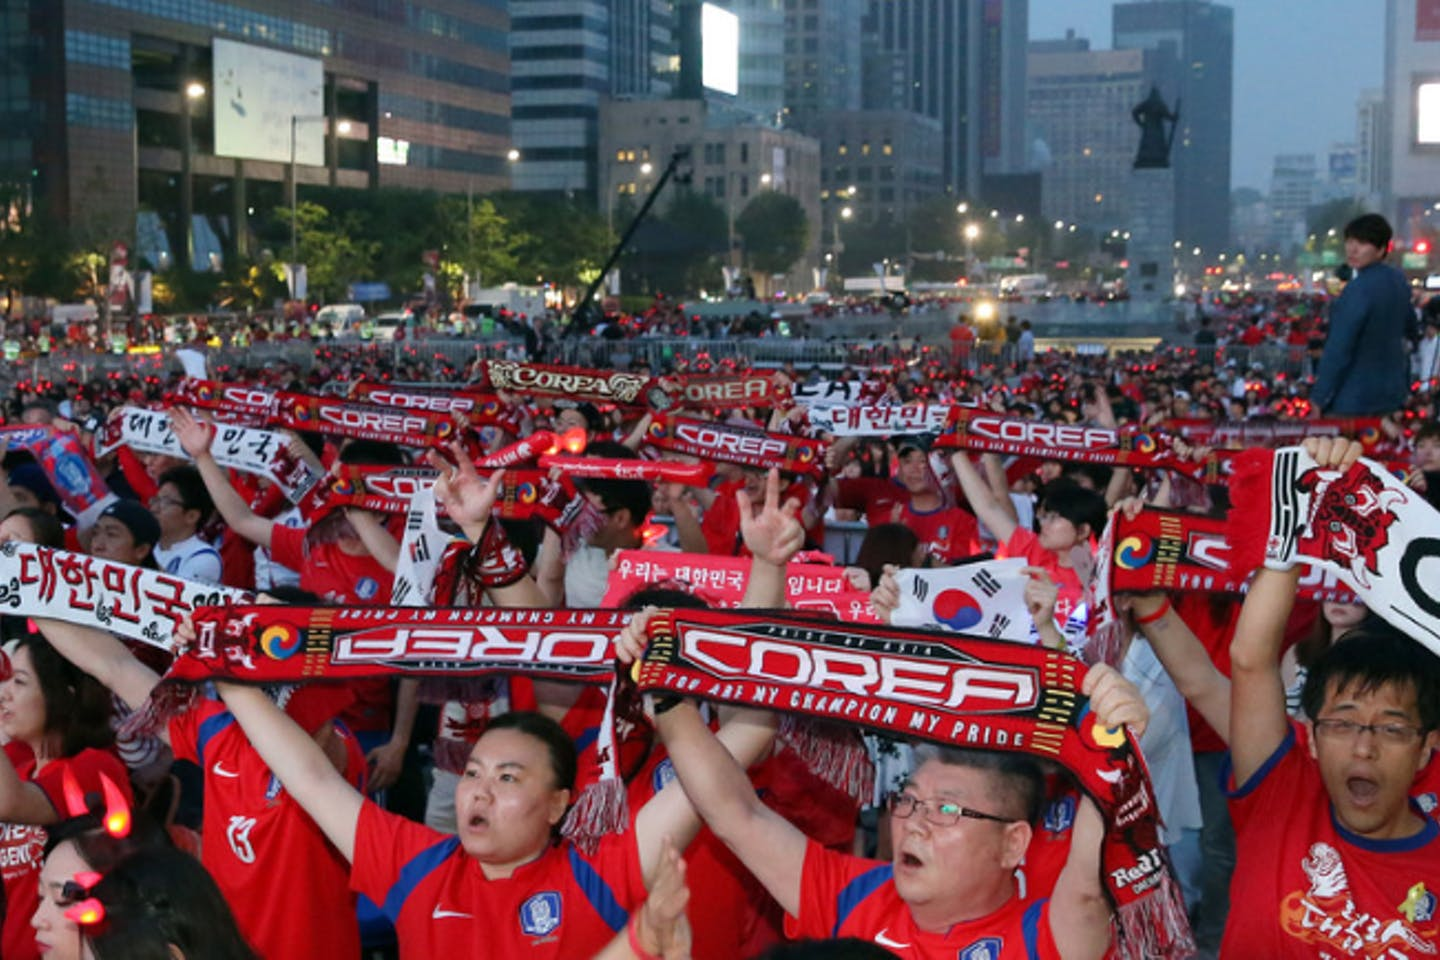 South Korea fans at the 2014 FIFA World Cup in Brazil.